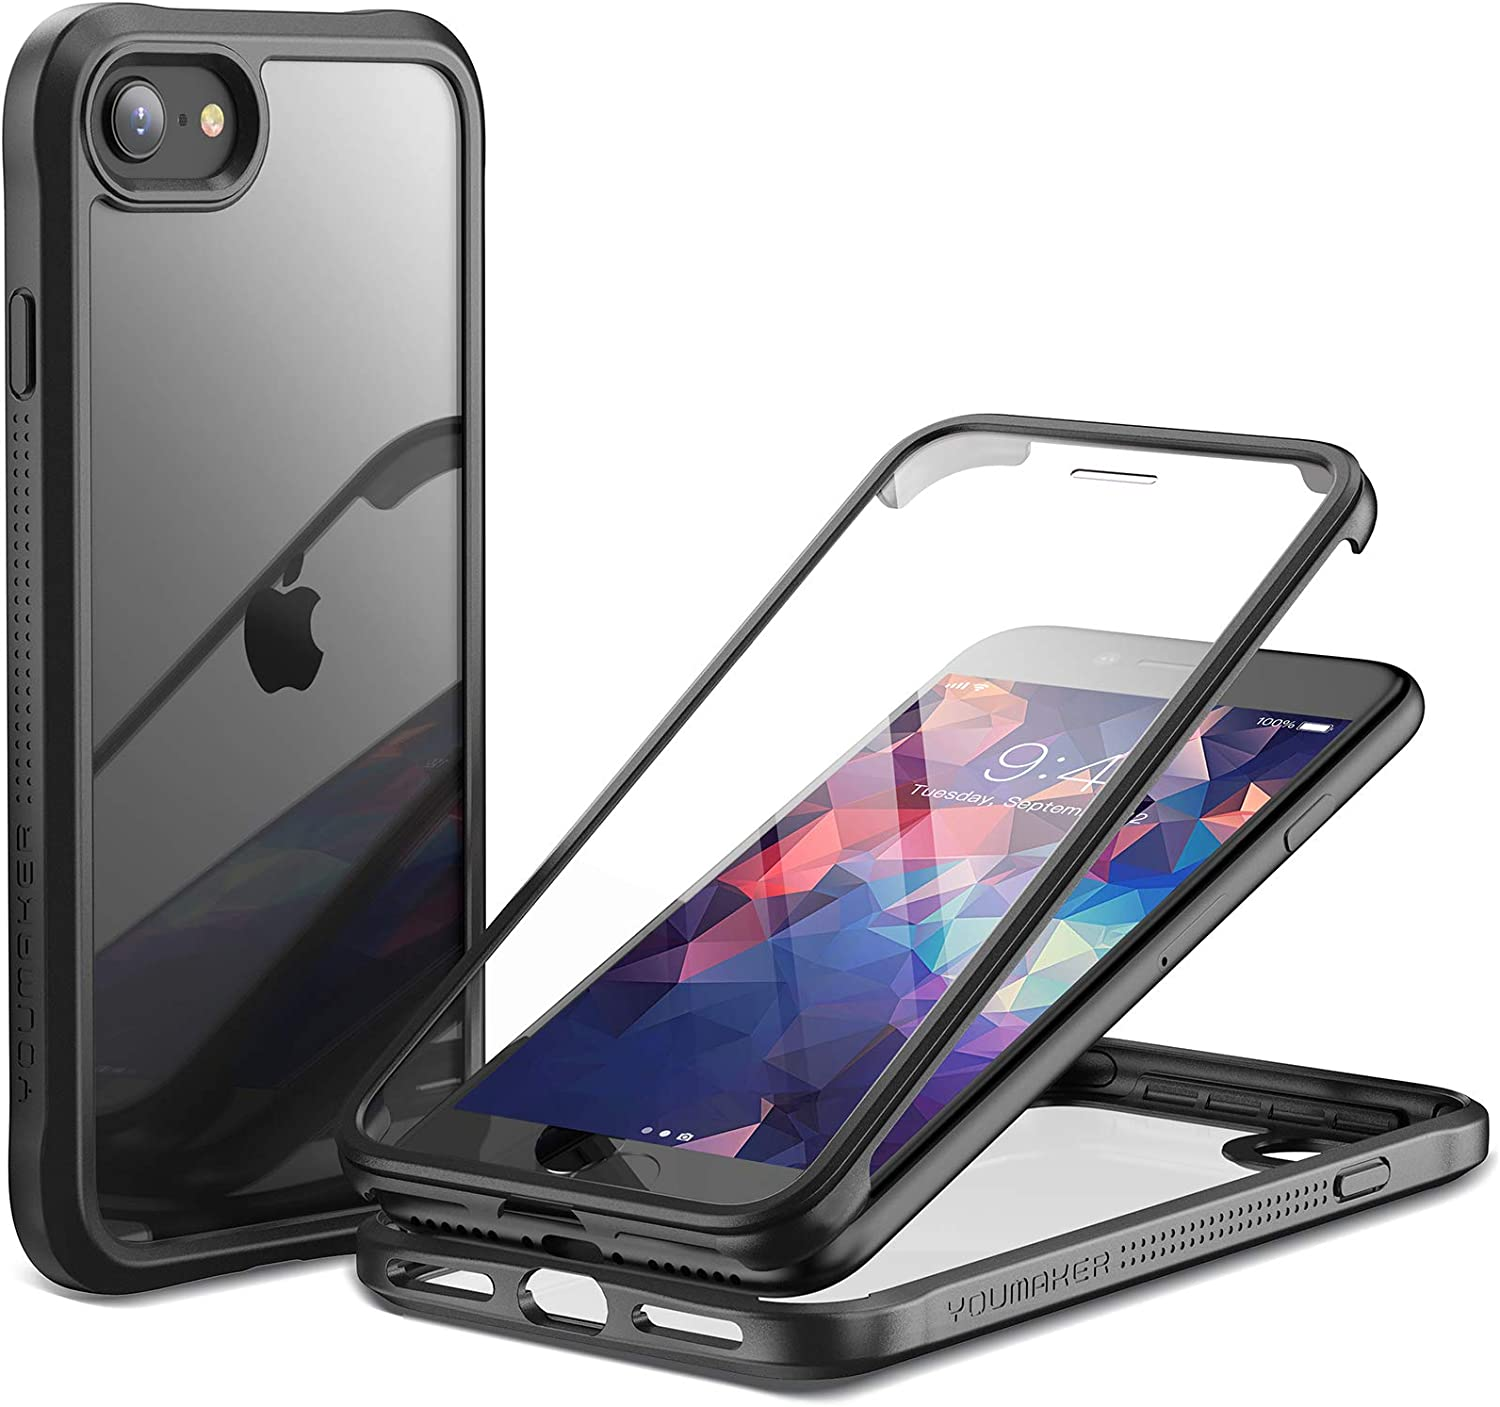 YOUMAKER Janus Designed for iPhone SE 2020 Case/iPhone 8 Case/iPhone 7 Case with Built-in Tempered Glass Screen Protector & Anti-Scratch Clear Back Full Body Slim Fit Protective Case 4.7 Inch-Black